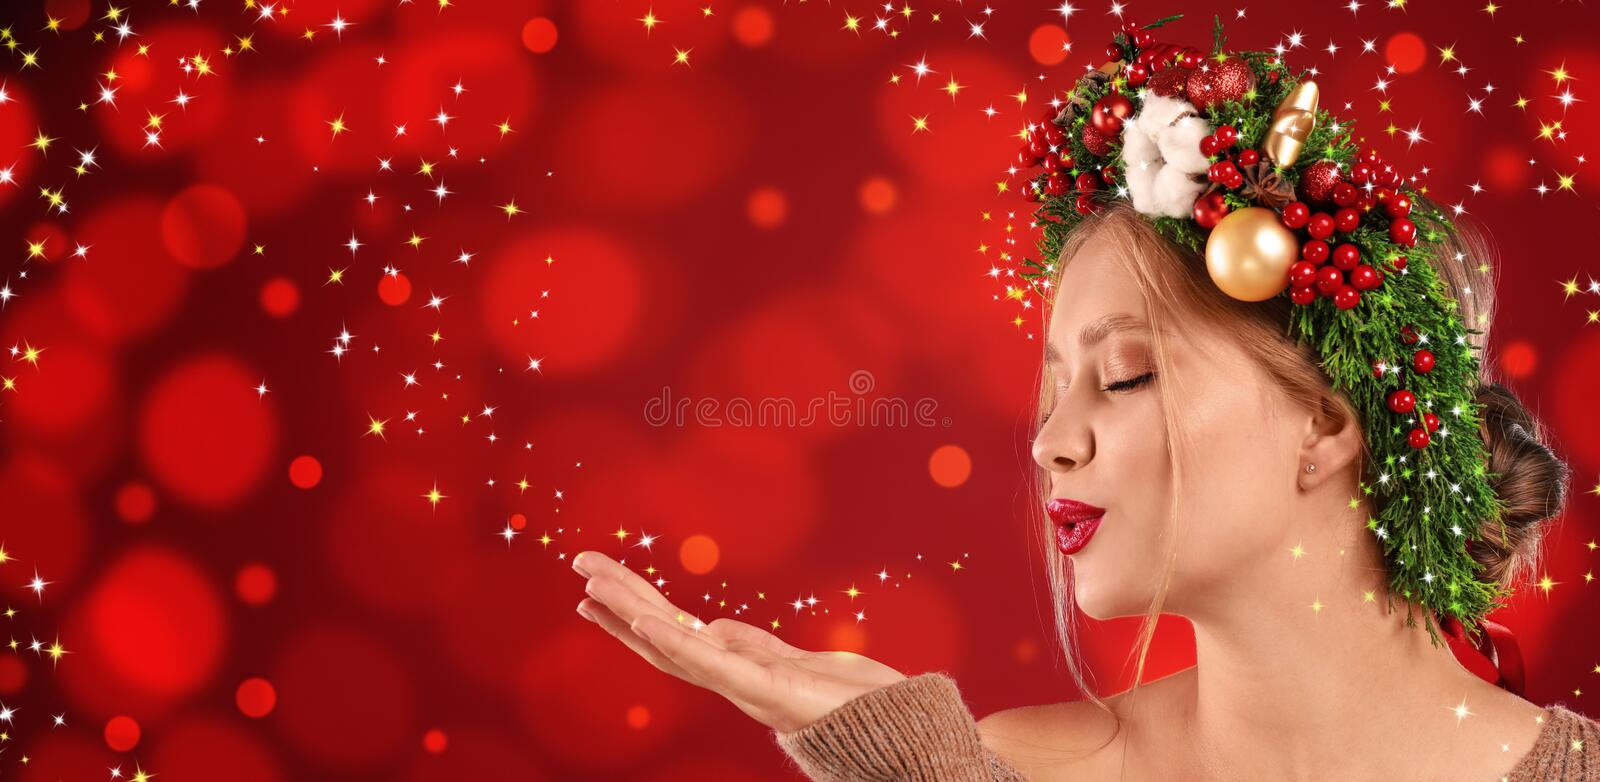 Beautiful young woman with Christmas wreath blowing magical snowy dust on red background. Bokeh effect royalty free stock photos